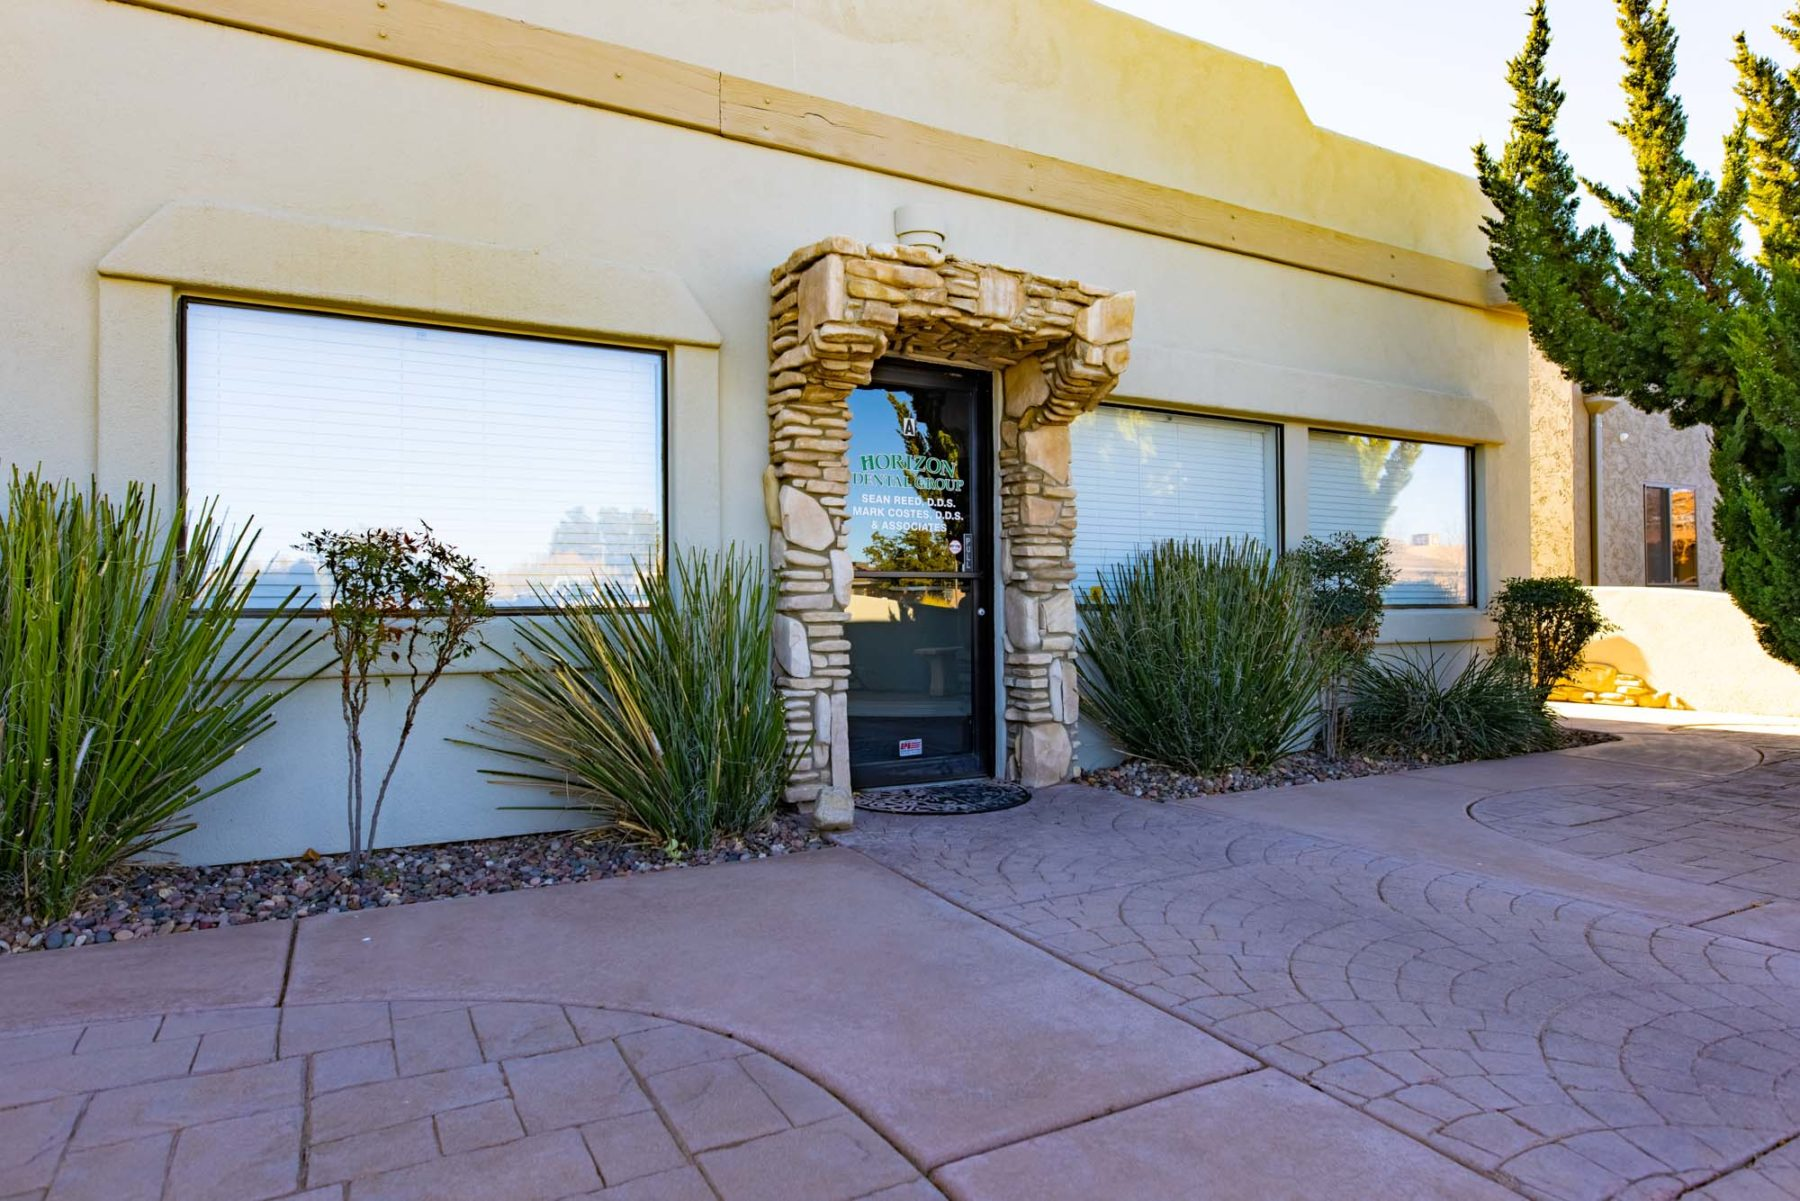 Exterior of the Horizon Dental Group office in Prescott Valley, AZ